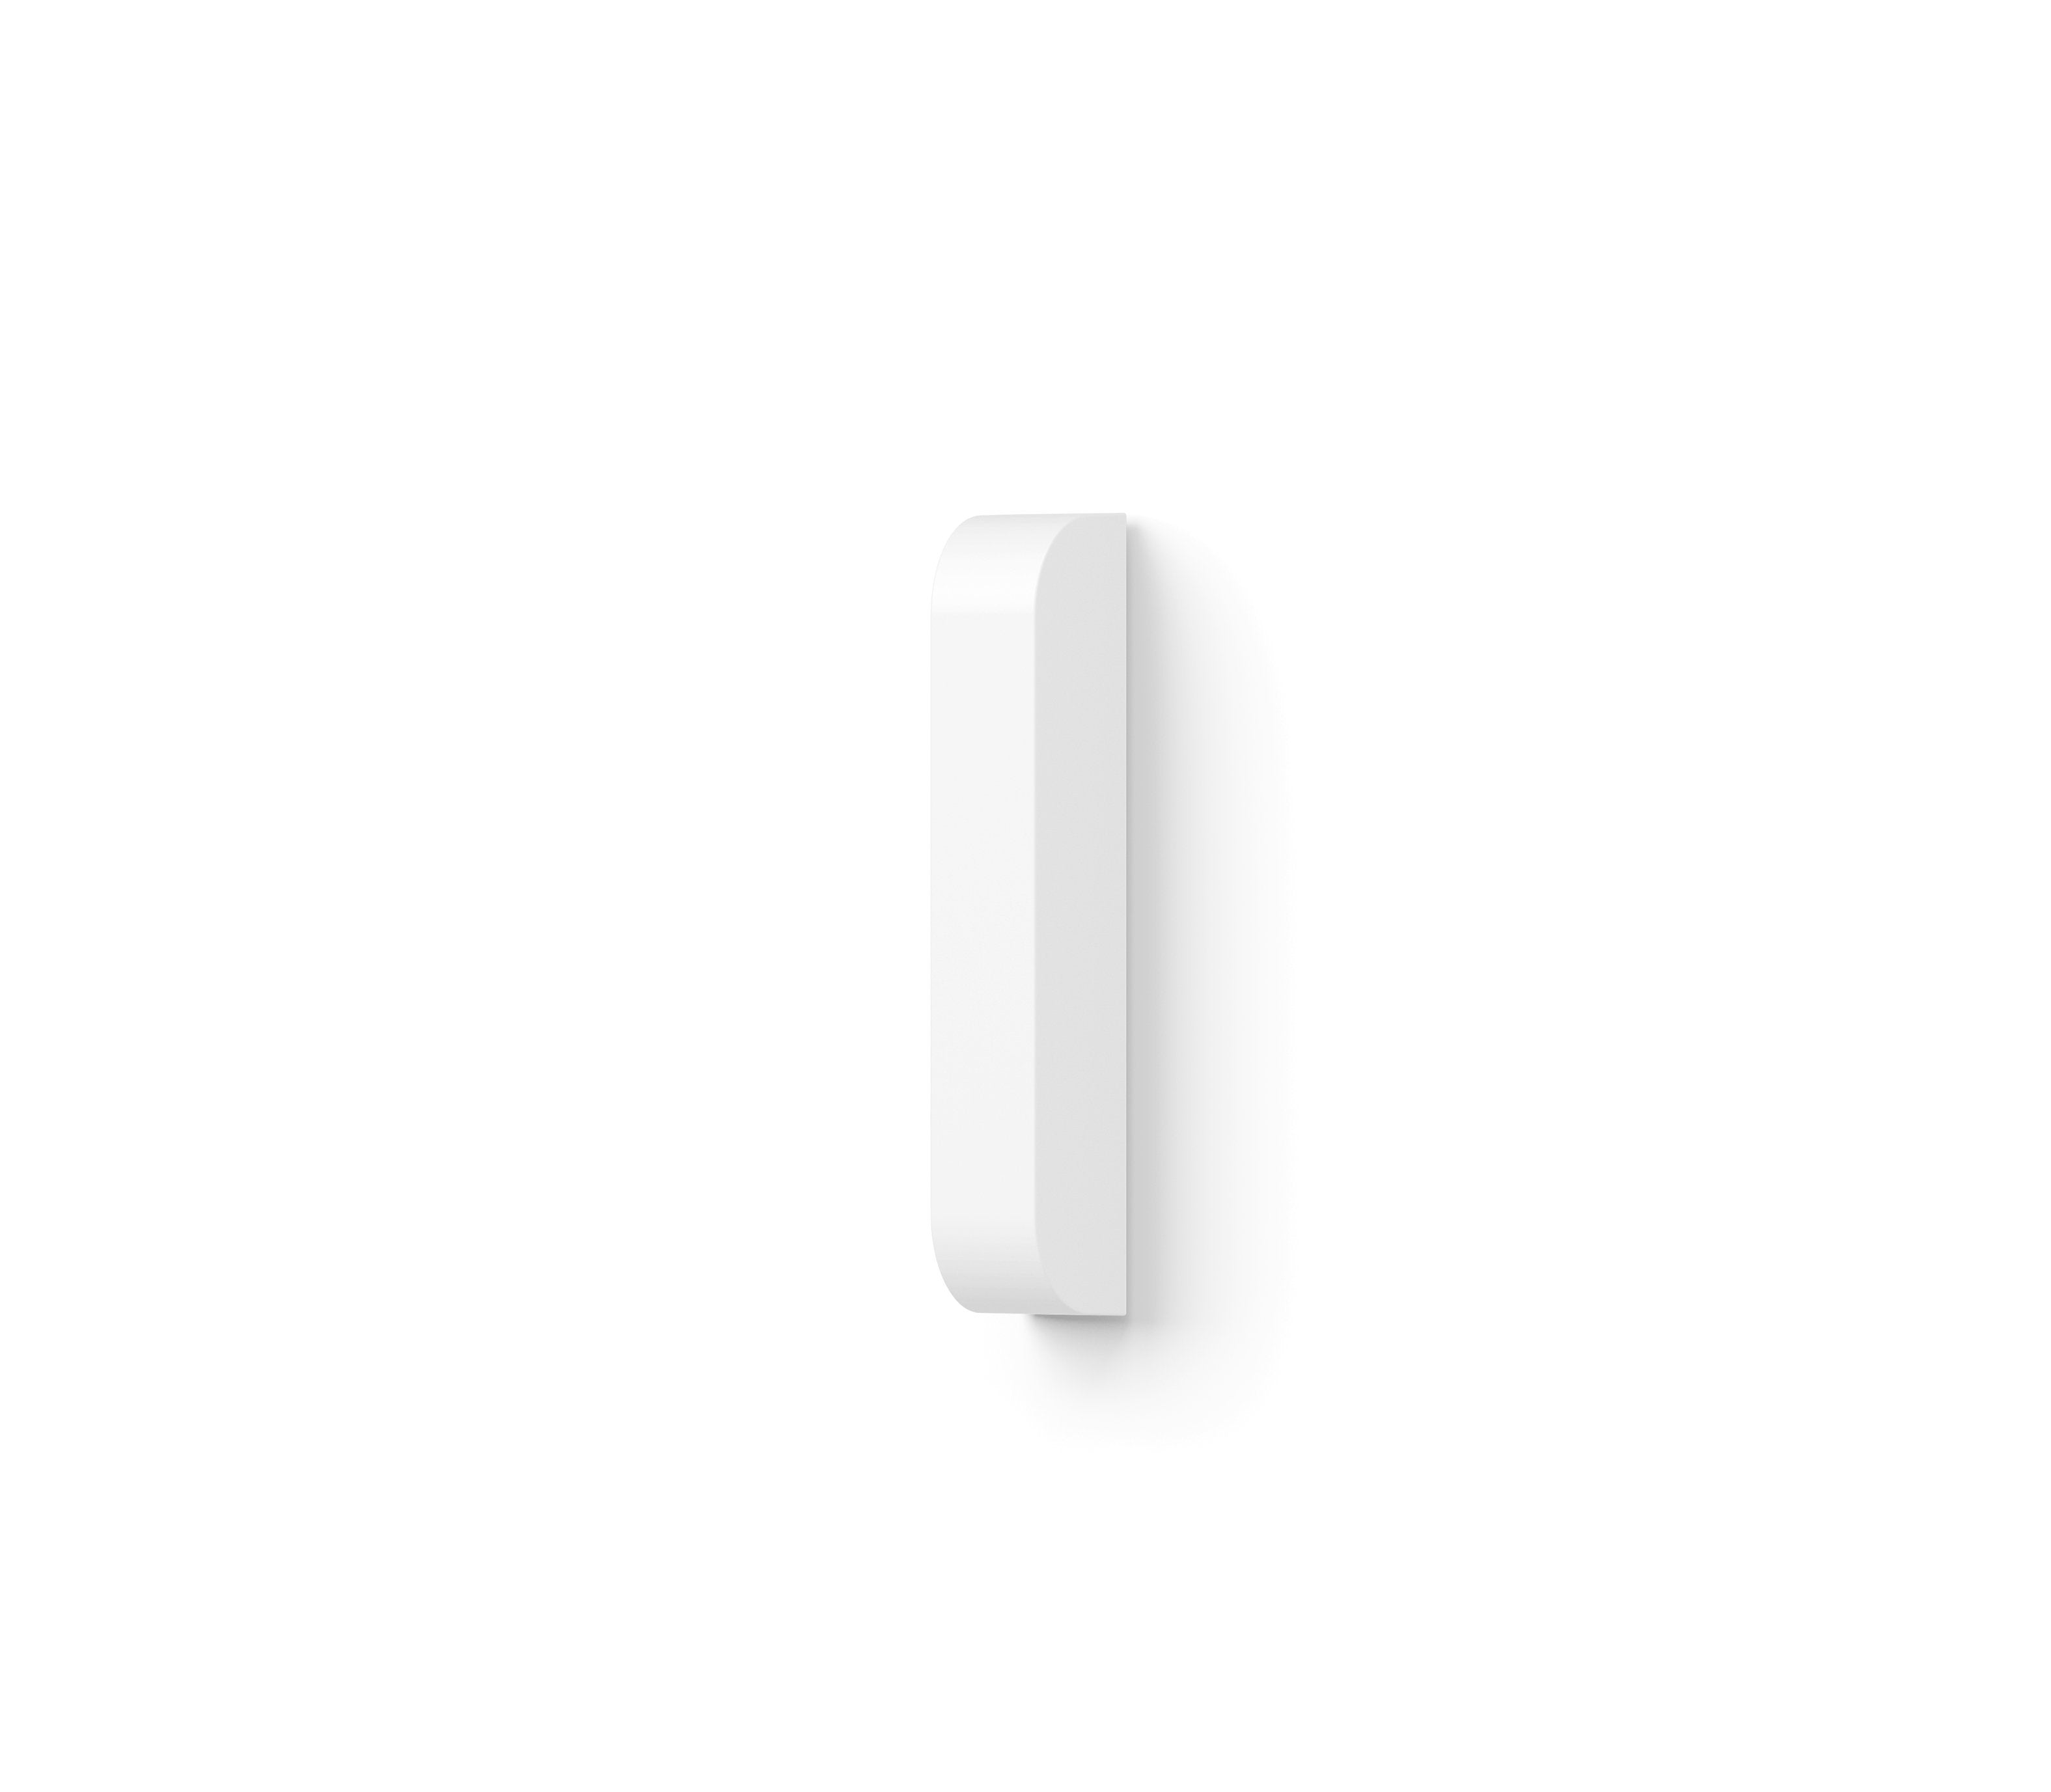 Open Window Magnet for Ring Alarm (for 1st Generation) - White: *Requires the Ring Alarm Security Kit.  *Ships to the continental US (including Alaska and Hawaii) and Canada (excluding Quebec).